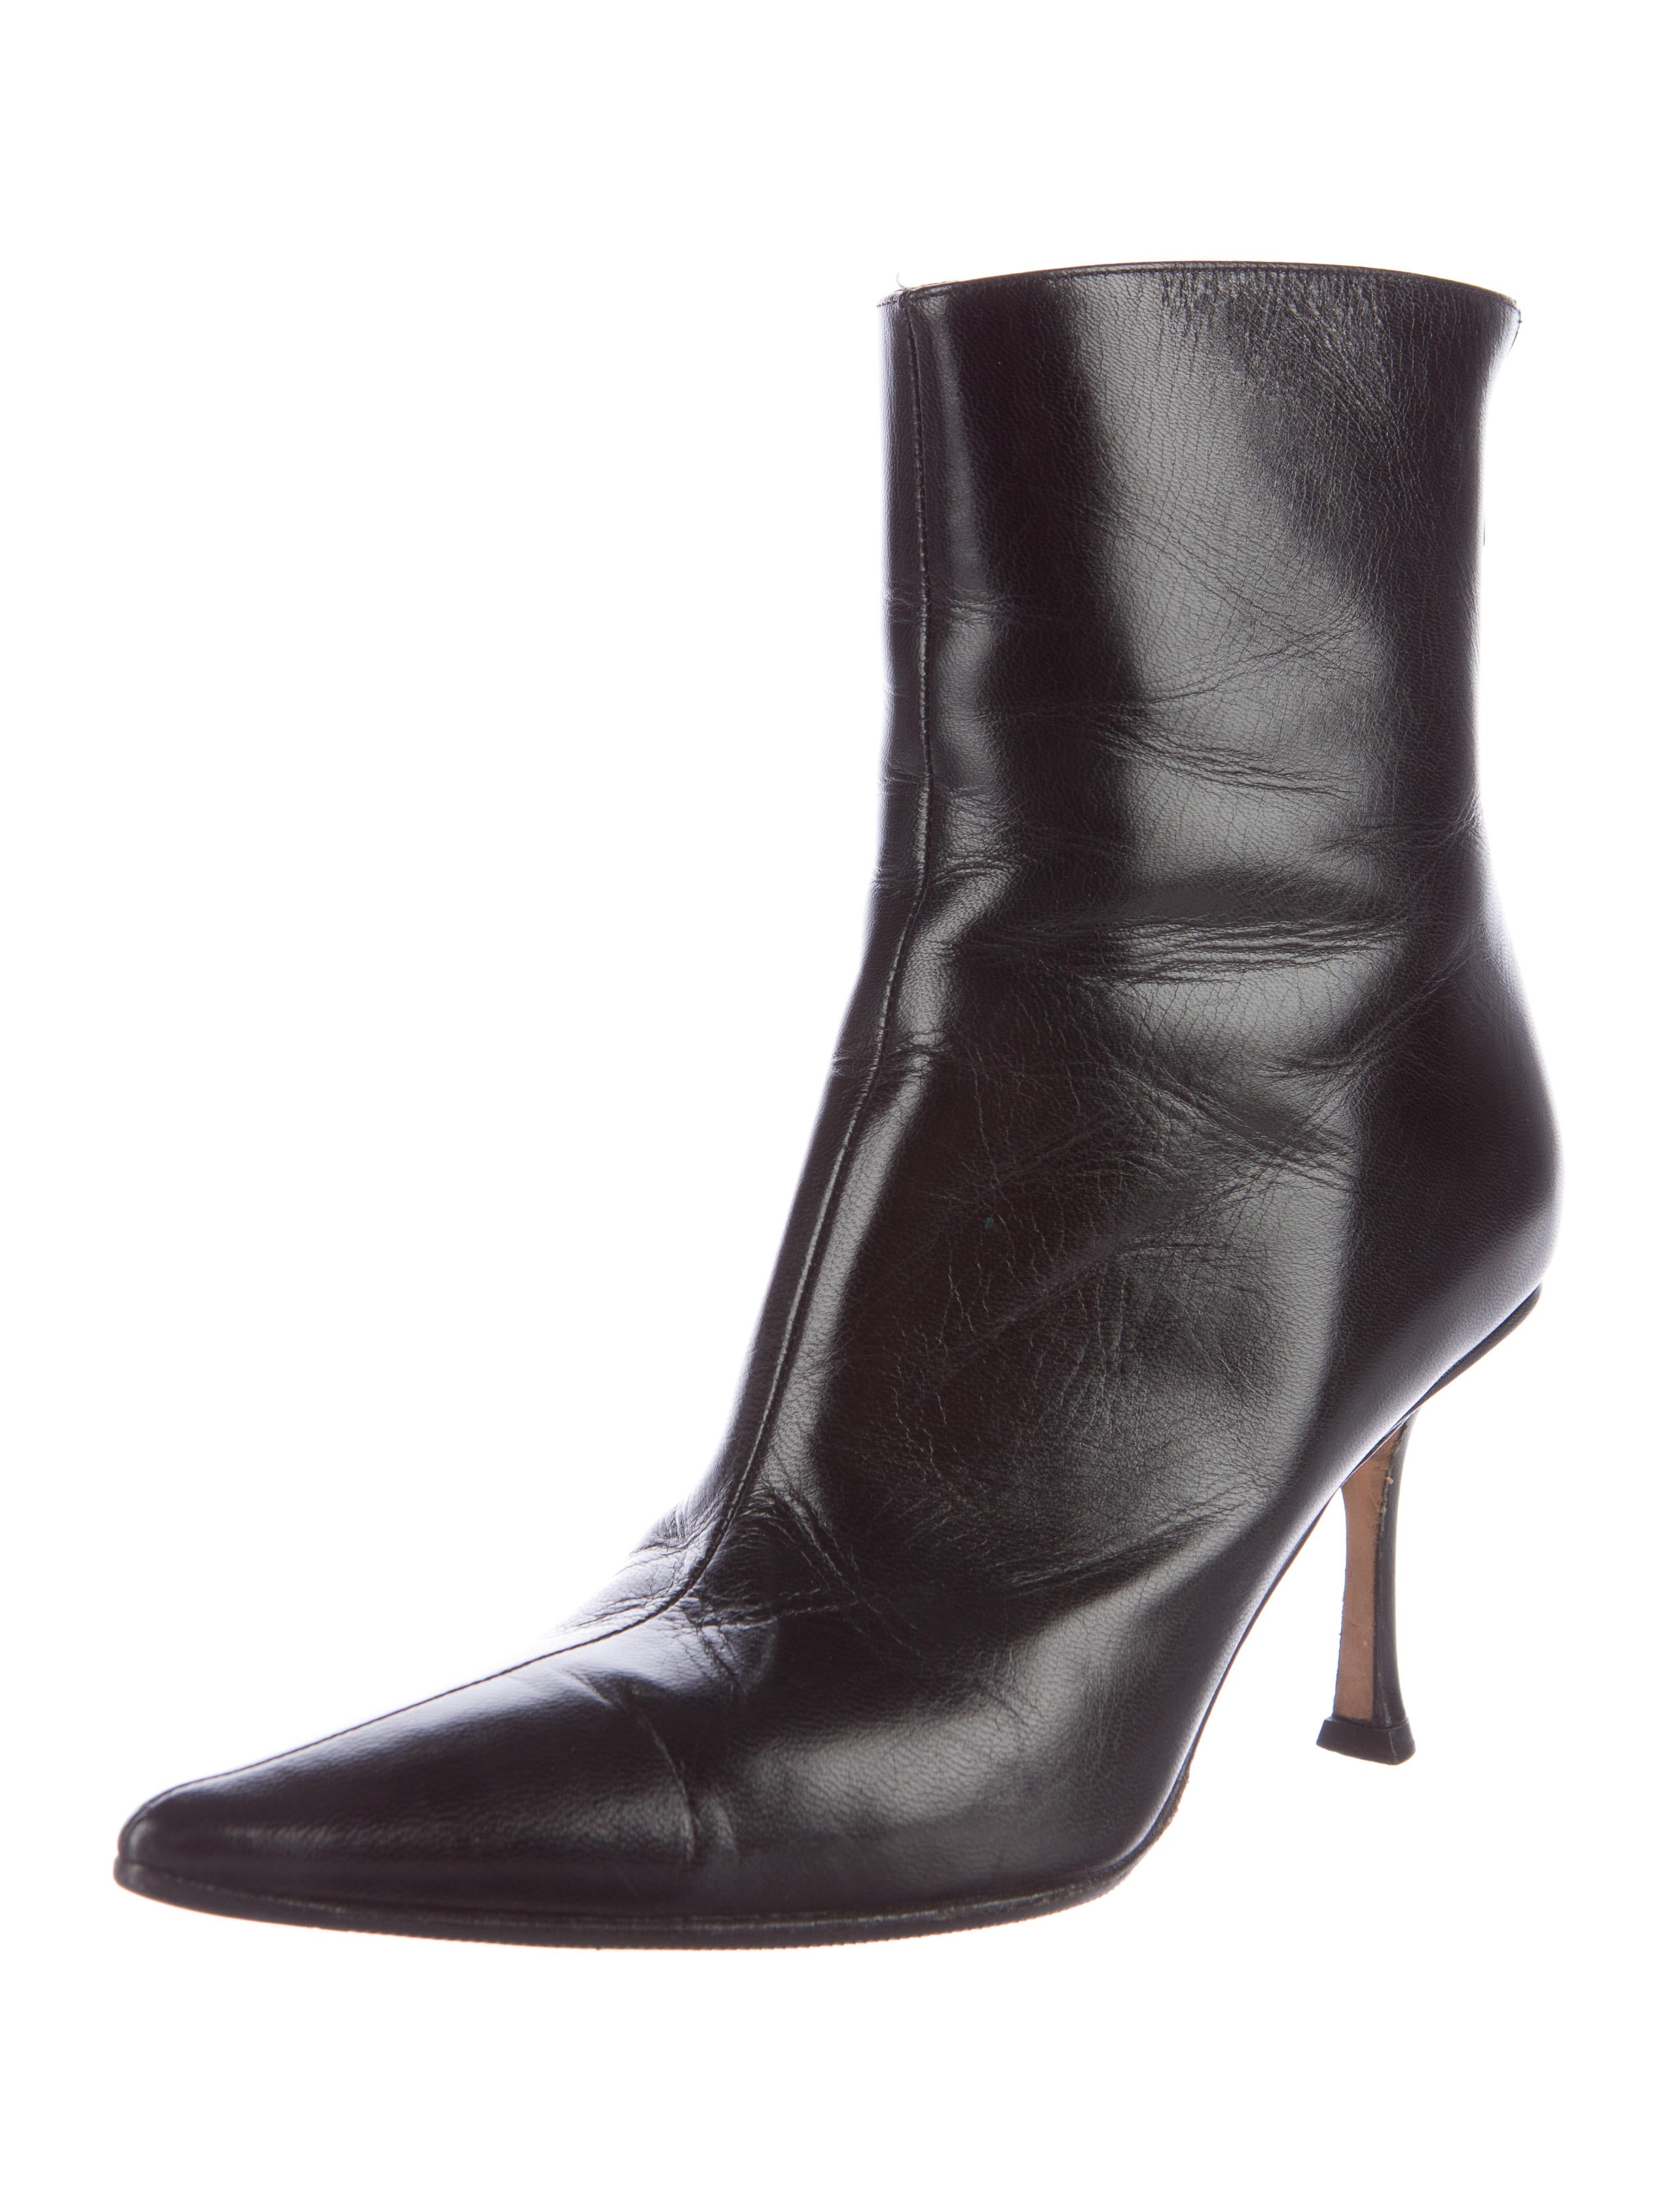 Find great deals on eBay for pointed toe boots. Shop with confidence.